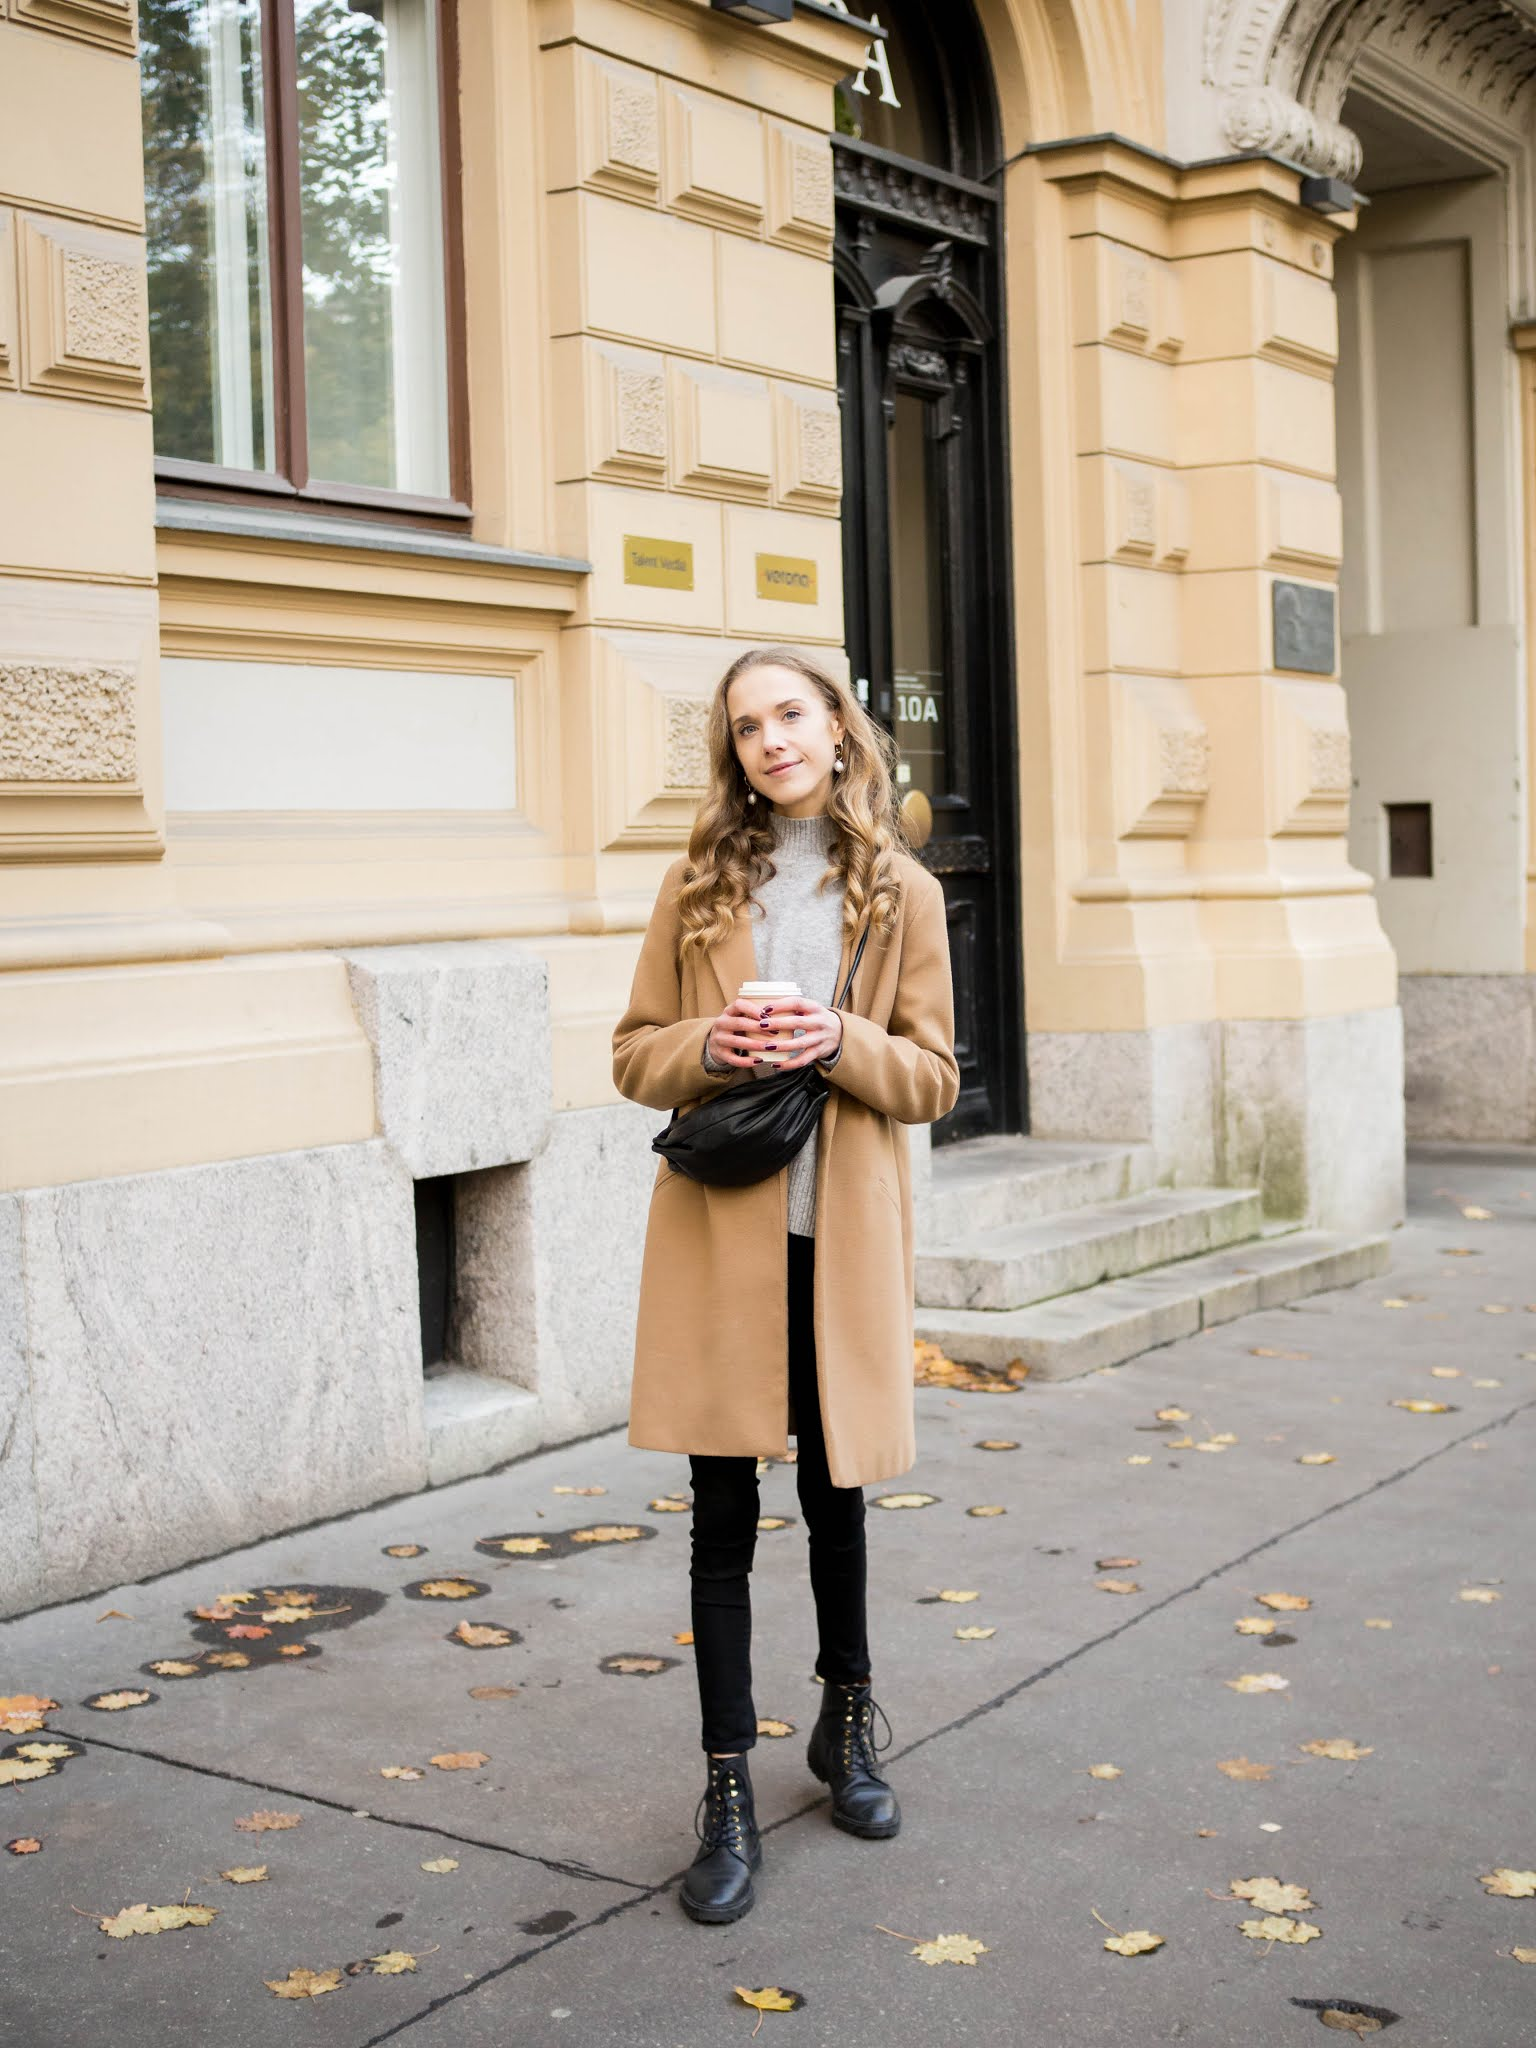 Syksyn ja talven takkimuoti // Coat fashion for autumn and winter